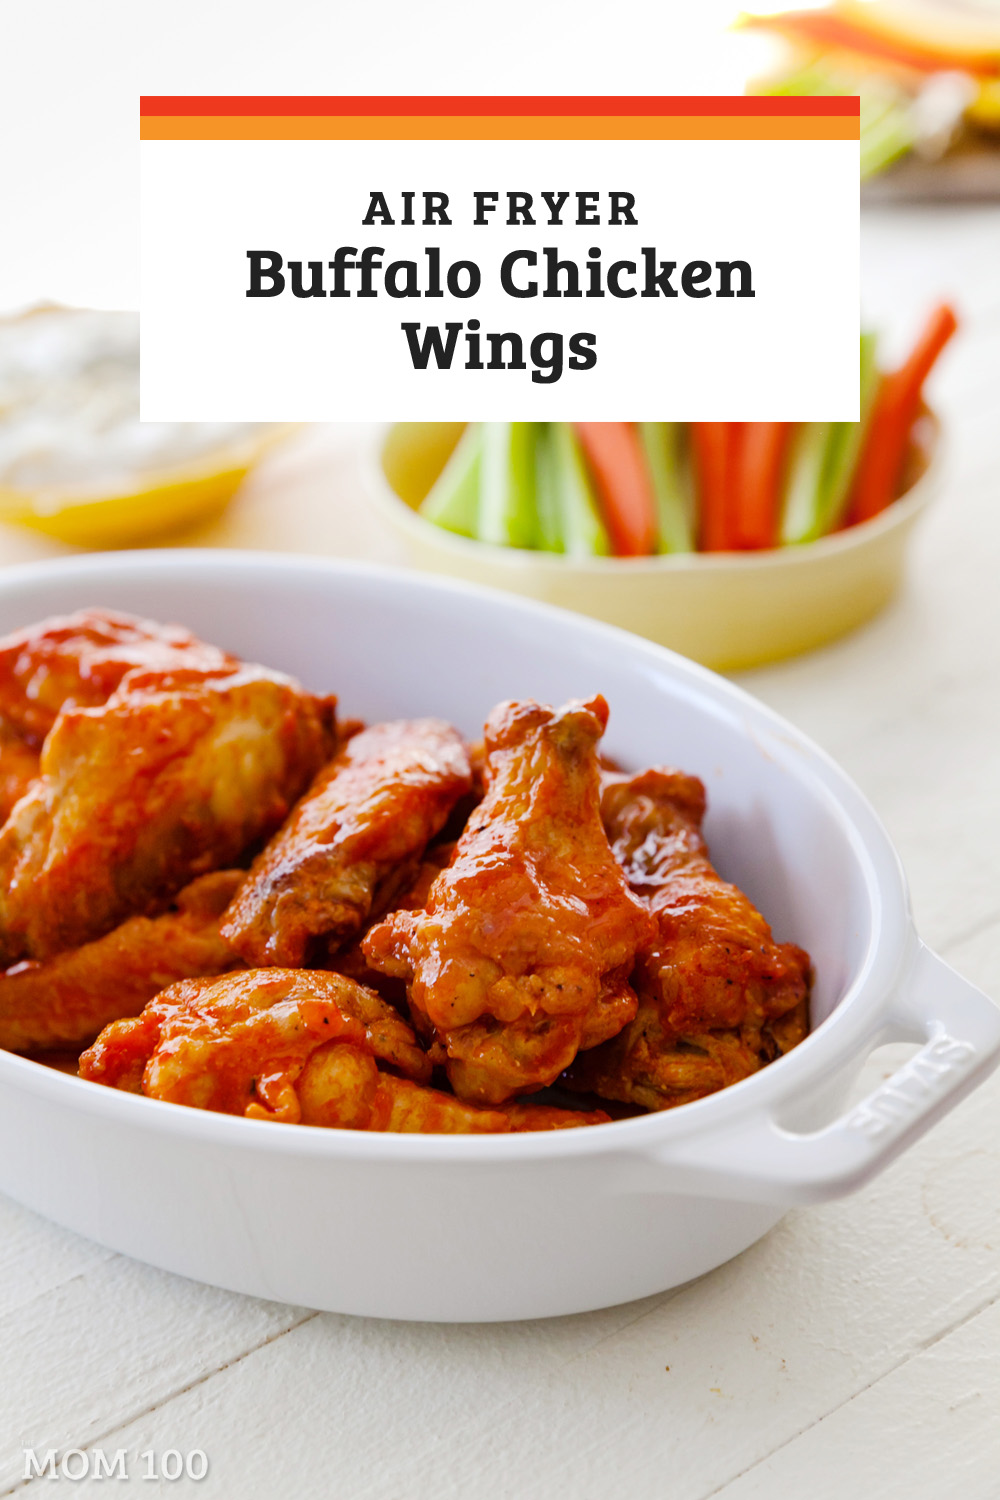 The Ultimate Air Fryer Buffalo Chicken Wings: If you need a final tipping point reason to buy an air fryer, people, this just might be it. #buffalochickenwings #airfryer #airfryerwings #chickenwings